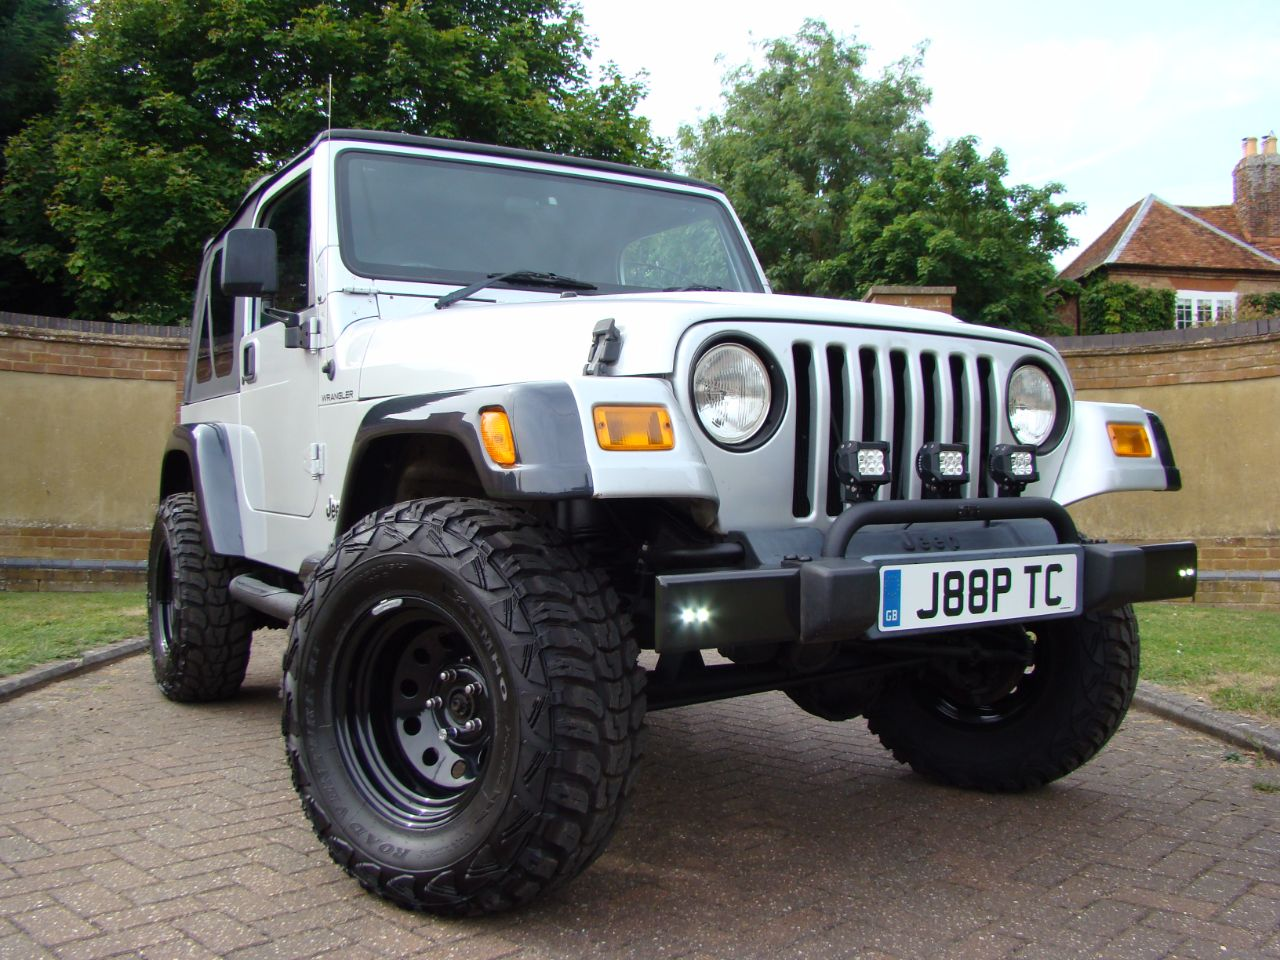 used jeep wrangler 39 s leighton buzzard bedfordshire jeep. Black Bedroom Furniture Sets. Home Design Ideas